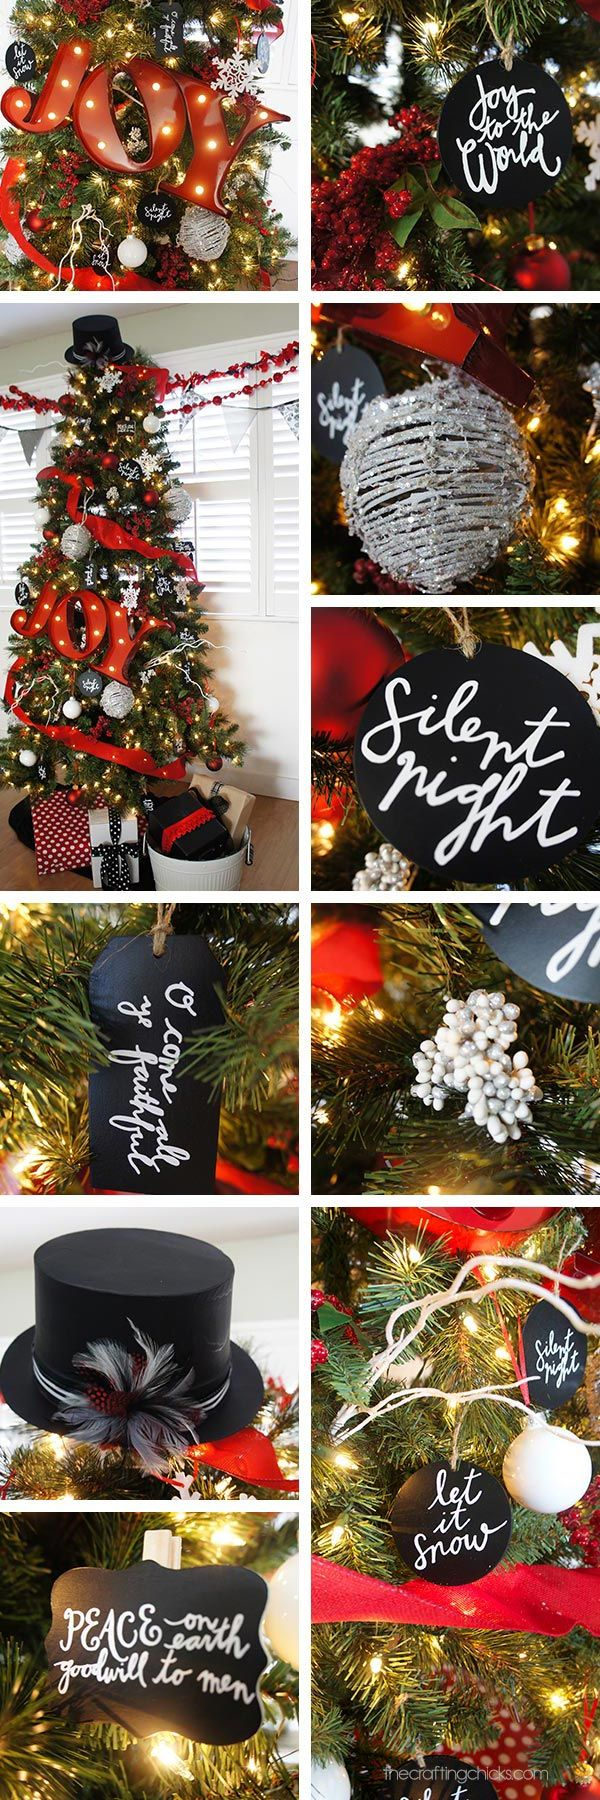 Black white and red decorated christmas tree - Red White And Black Michael S Dream Tree Reveal